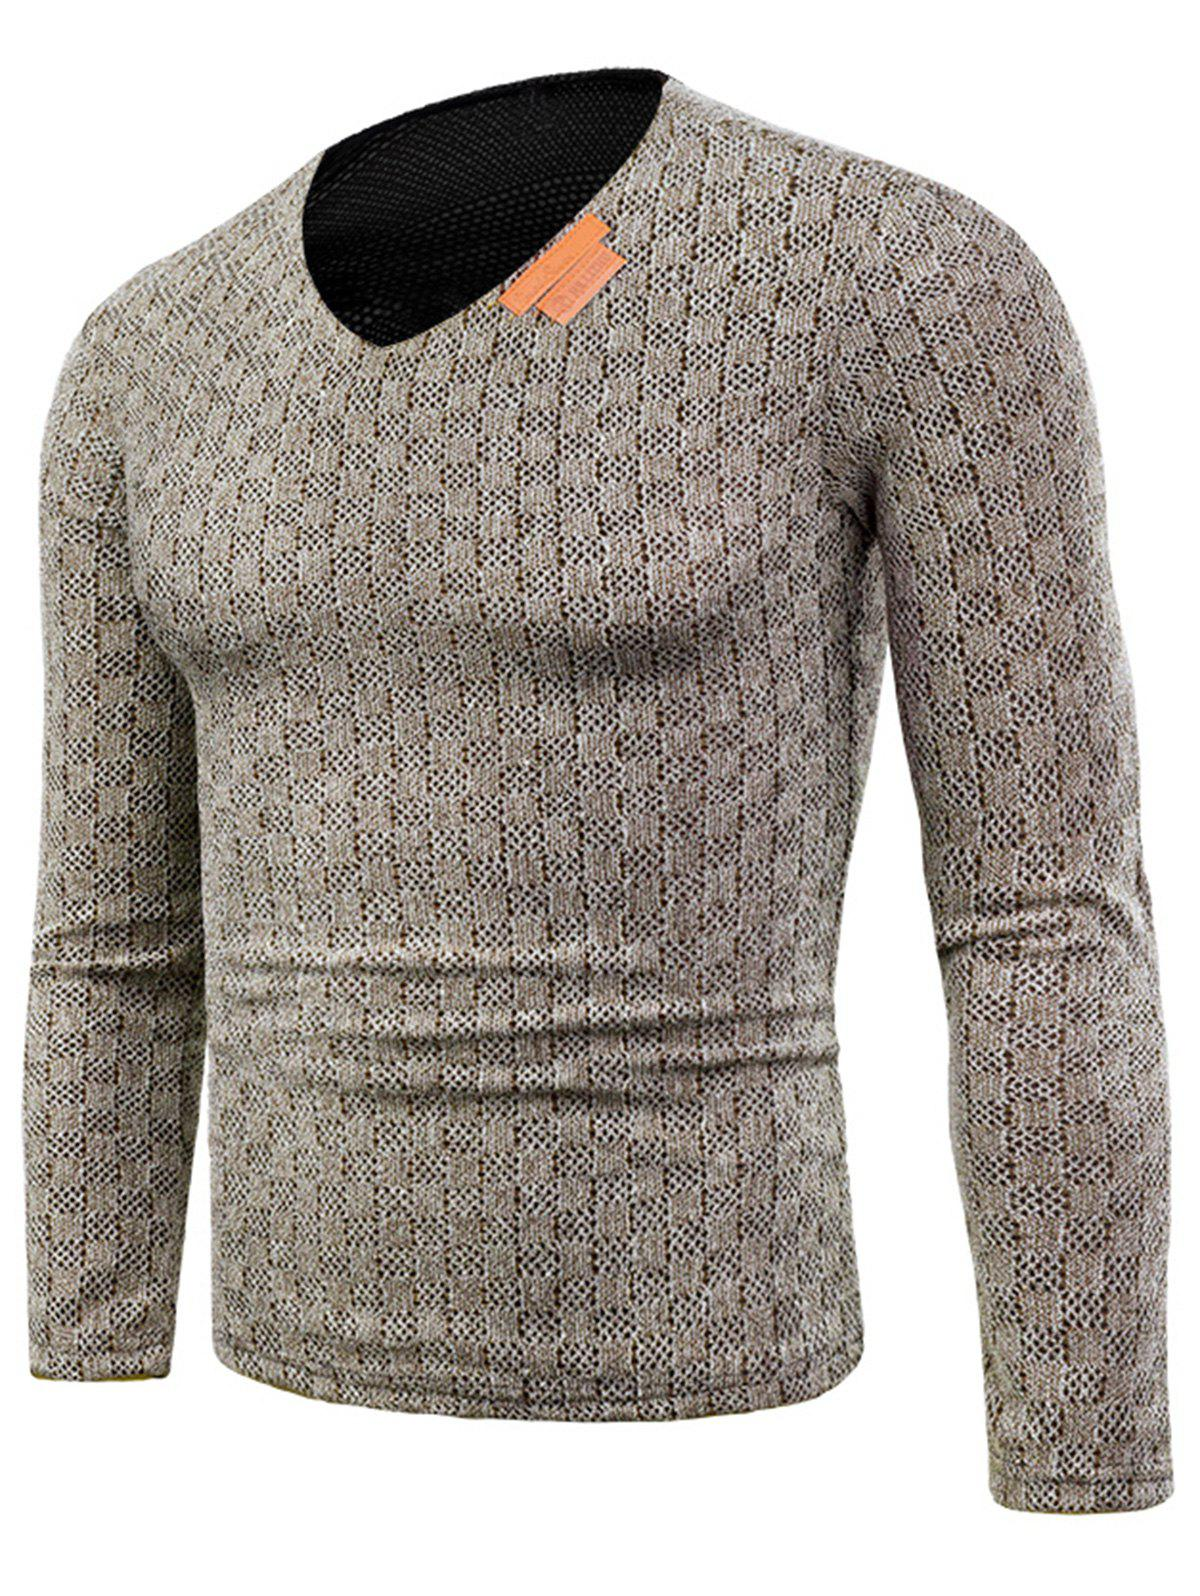 V Neck Long Sleeve Applique Knitted T-shirt